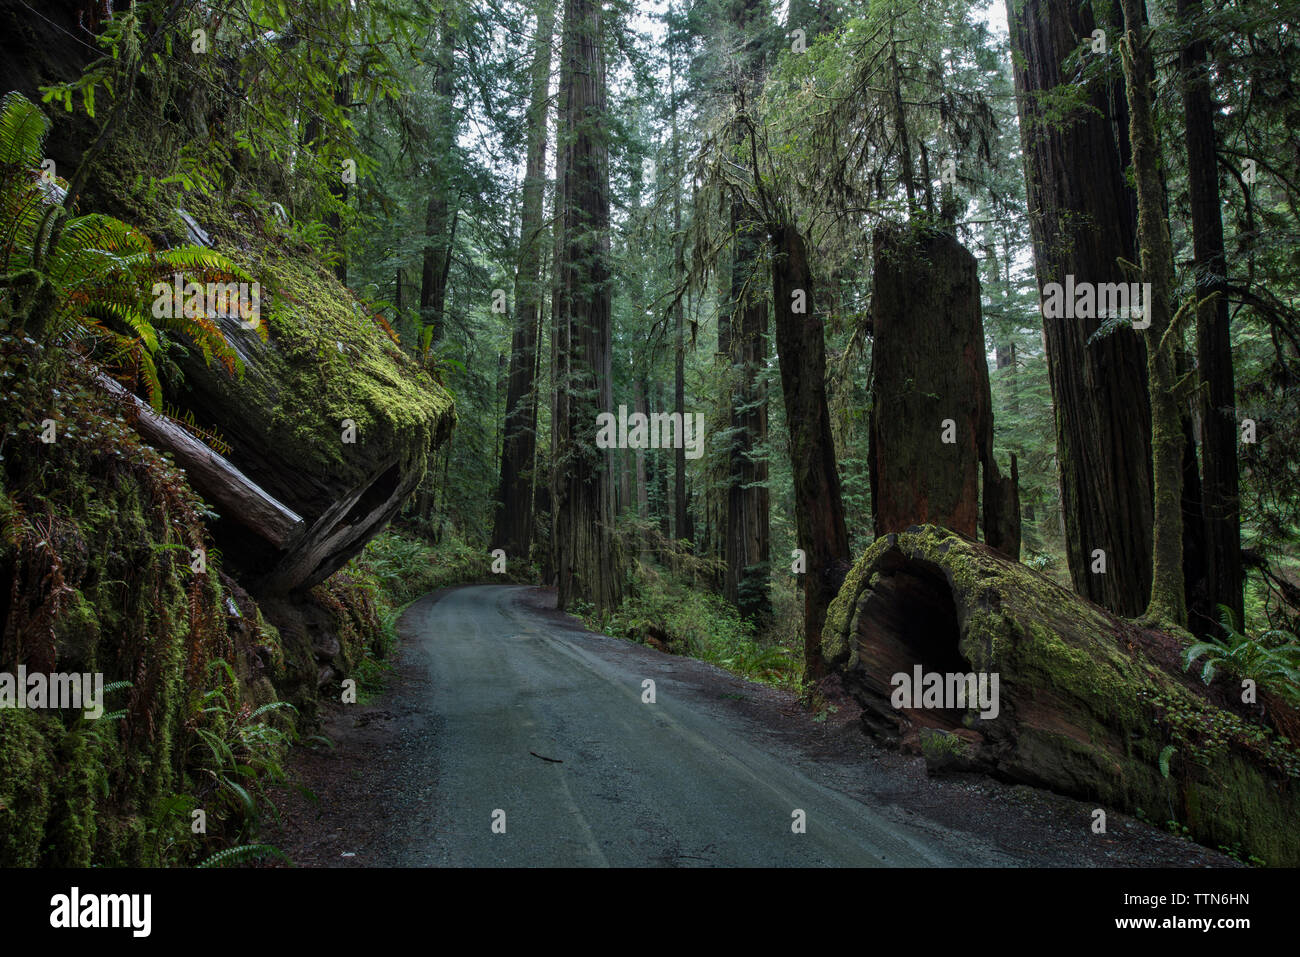 Road amidst forest at Jedediah Smith Redwoods State Park - Stock Image